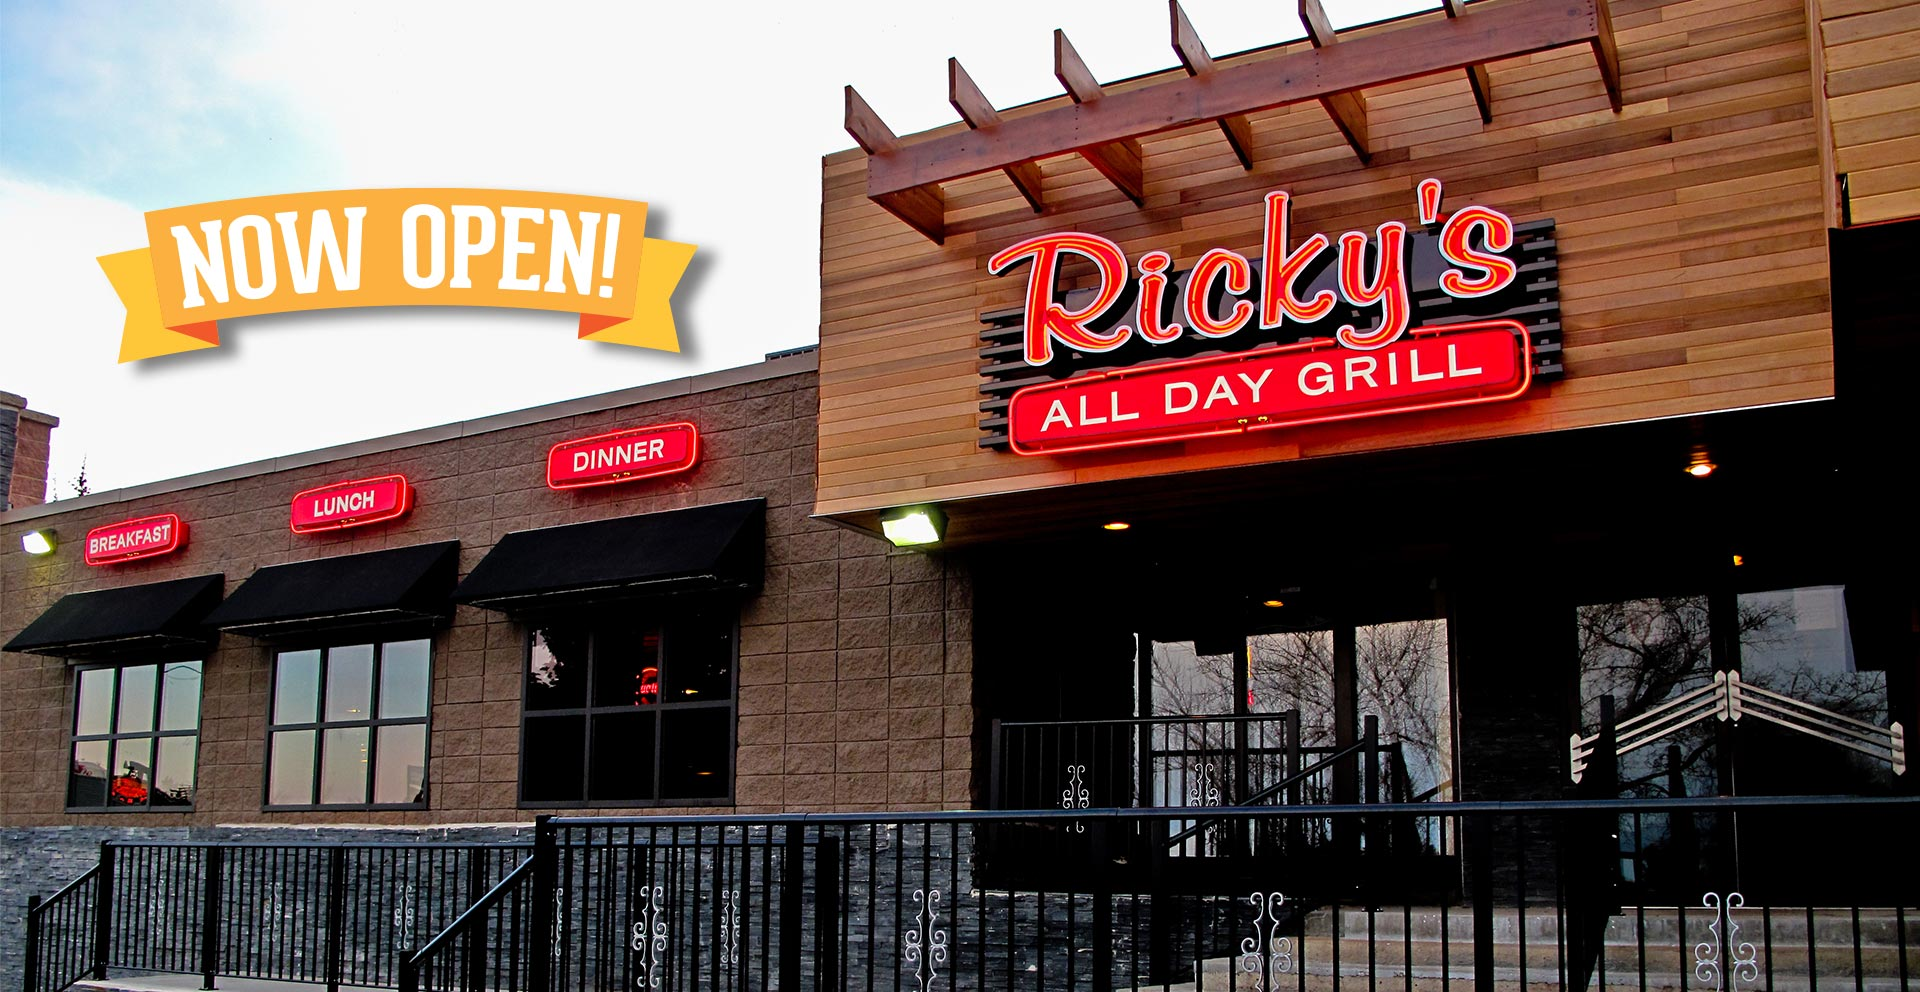 The newest Ricky's All Day Grill is open in Brooks, AB! Conveniently located next to the Motel 6 Brooks. Enjoy breakfast, lunch & dinner at this great location.